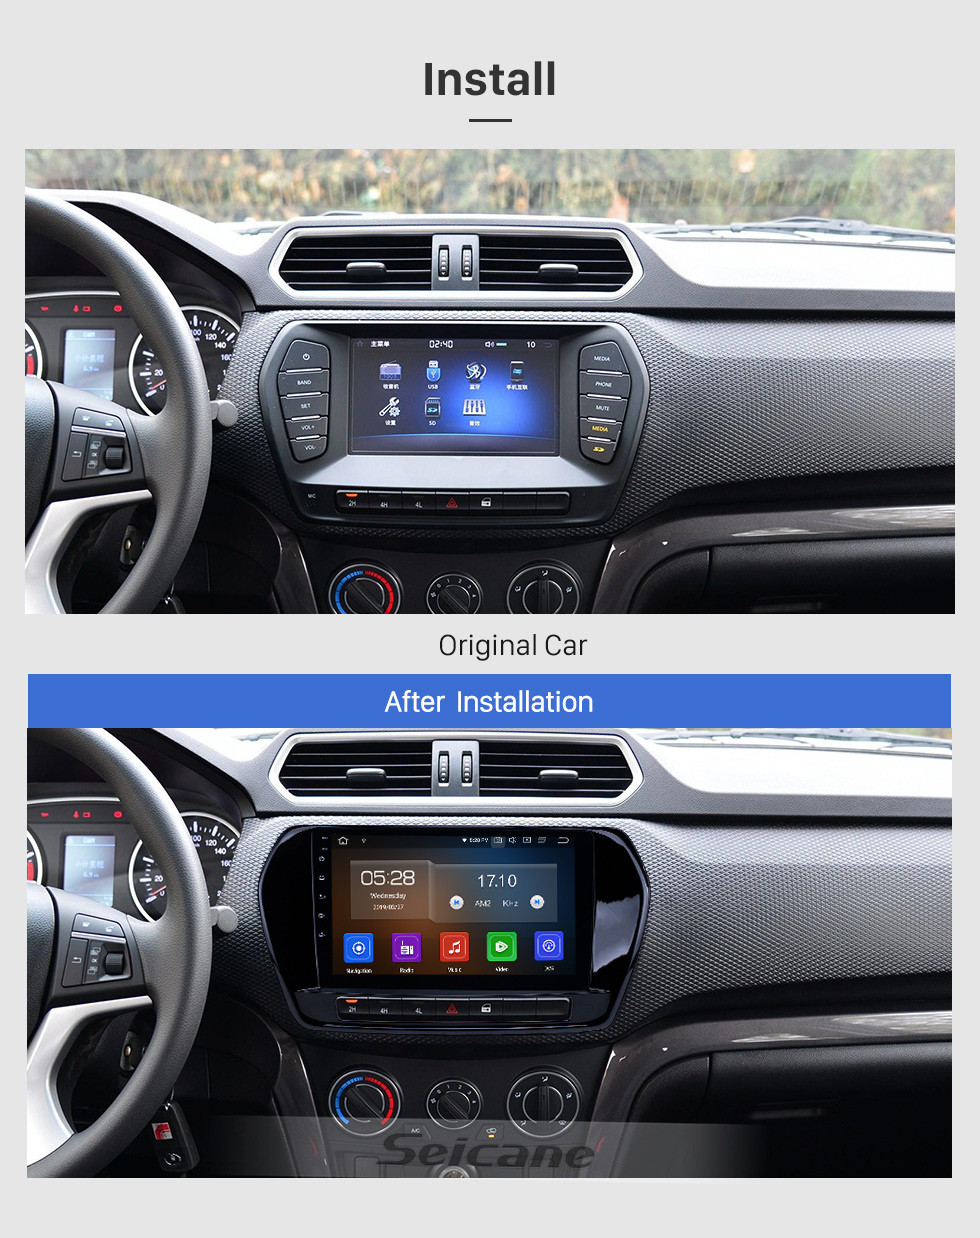 Seicane Pantalla táctil HD 2011-2015 Great Wall Wingle 5 Android 9.0 9 pulgadas Radio de navegación GPS Bluetooth AUX Carplay compatible Cámara trasera